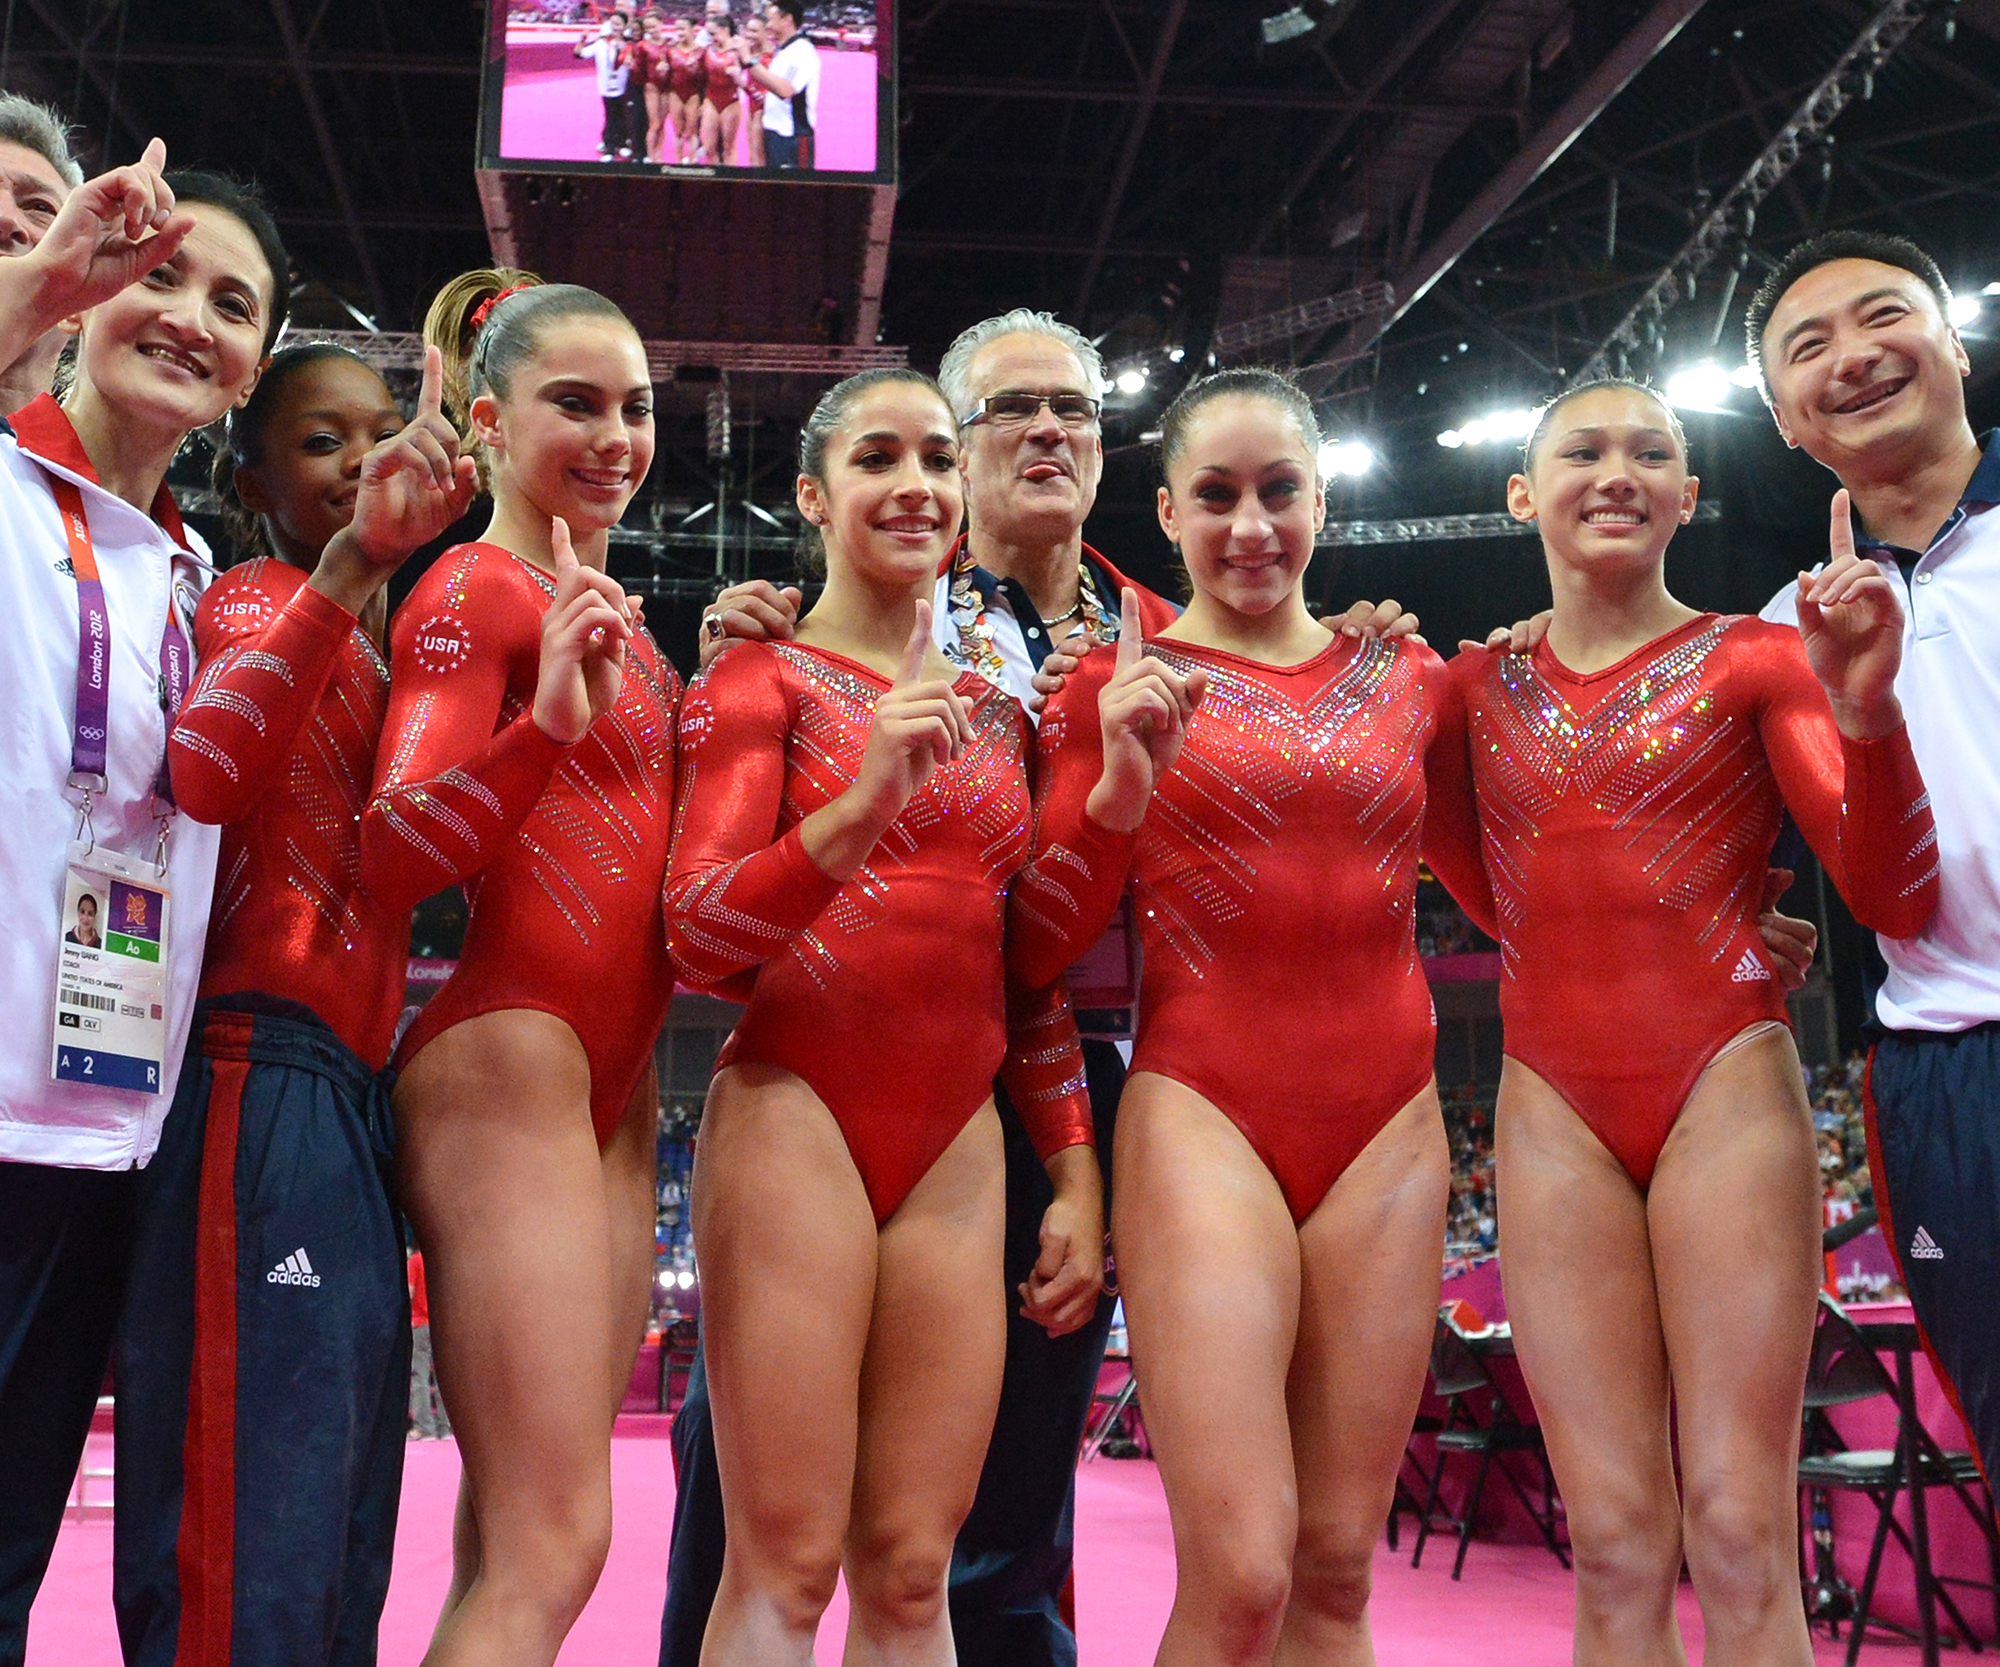 <p>2012 London Olympics, The Fierce Five, USA</p>